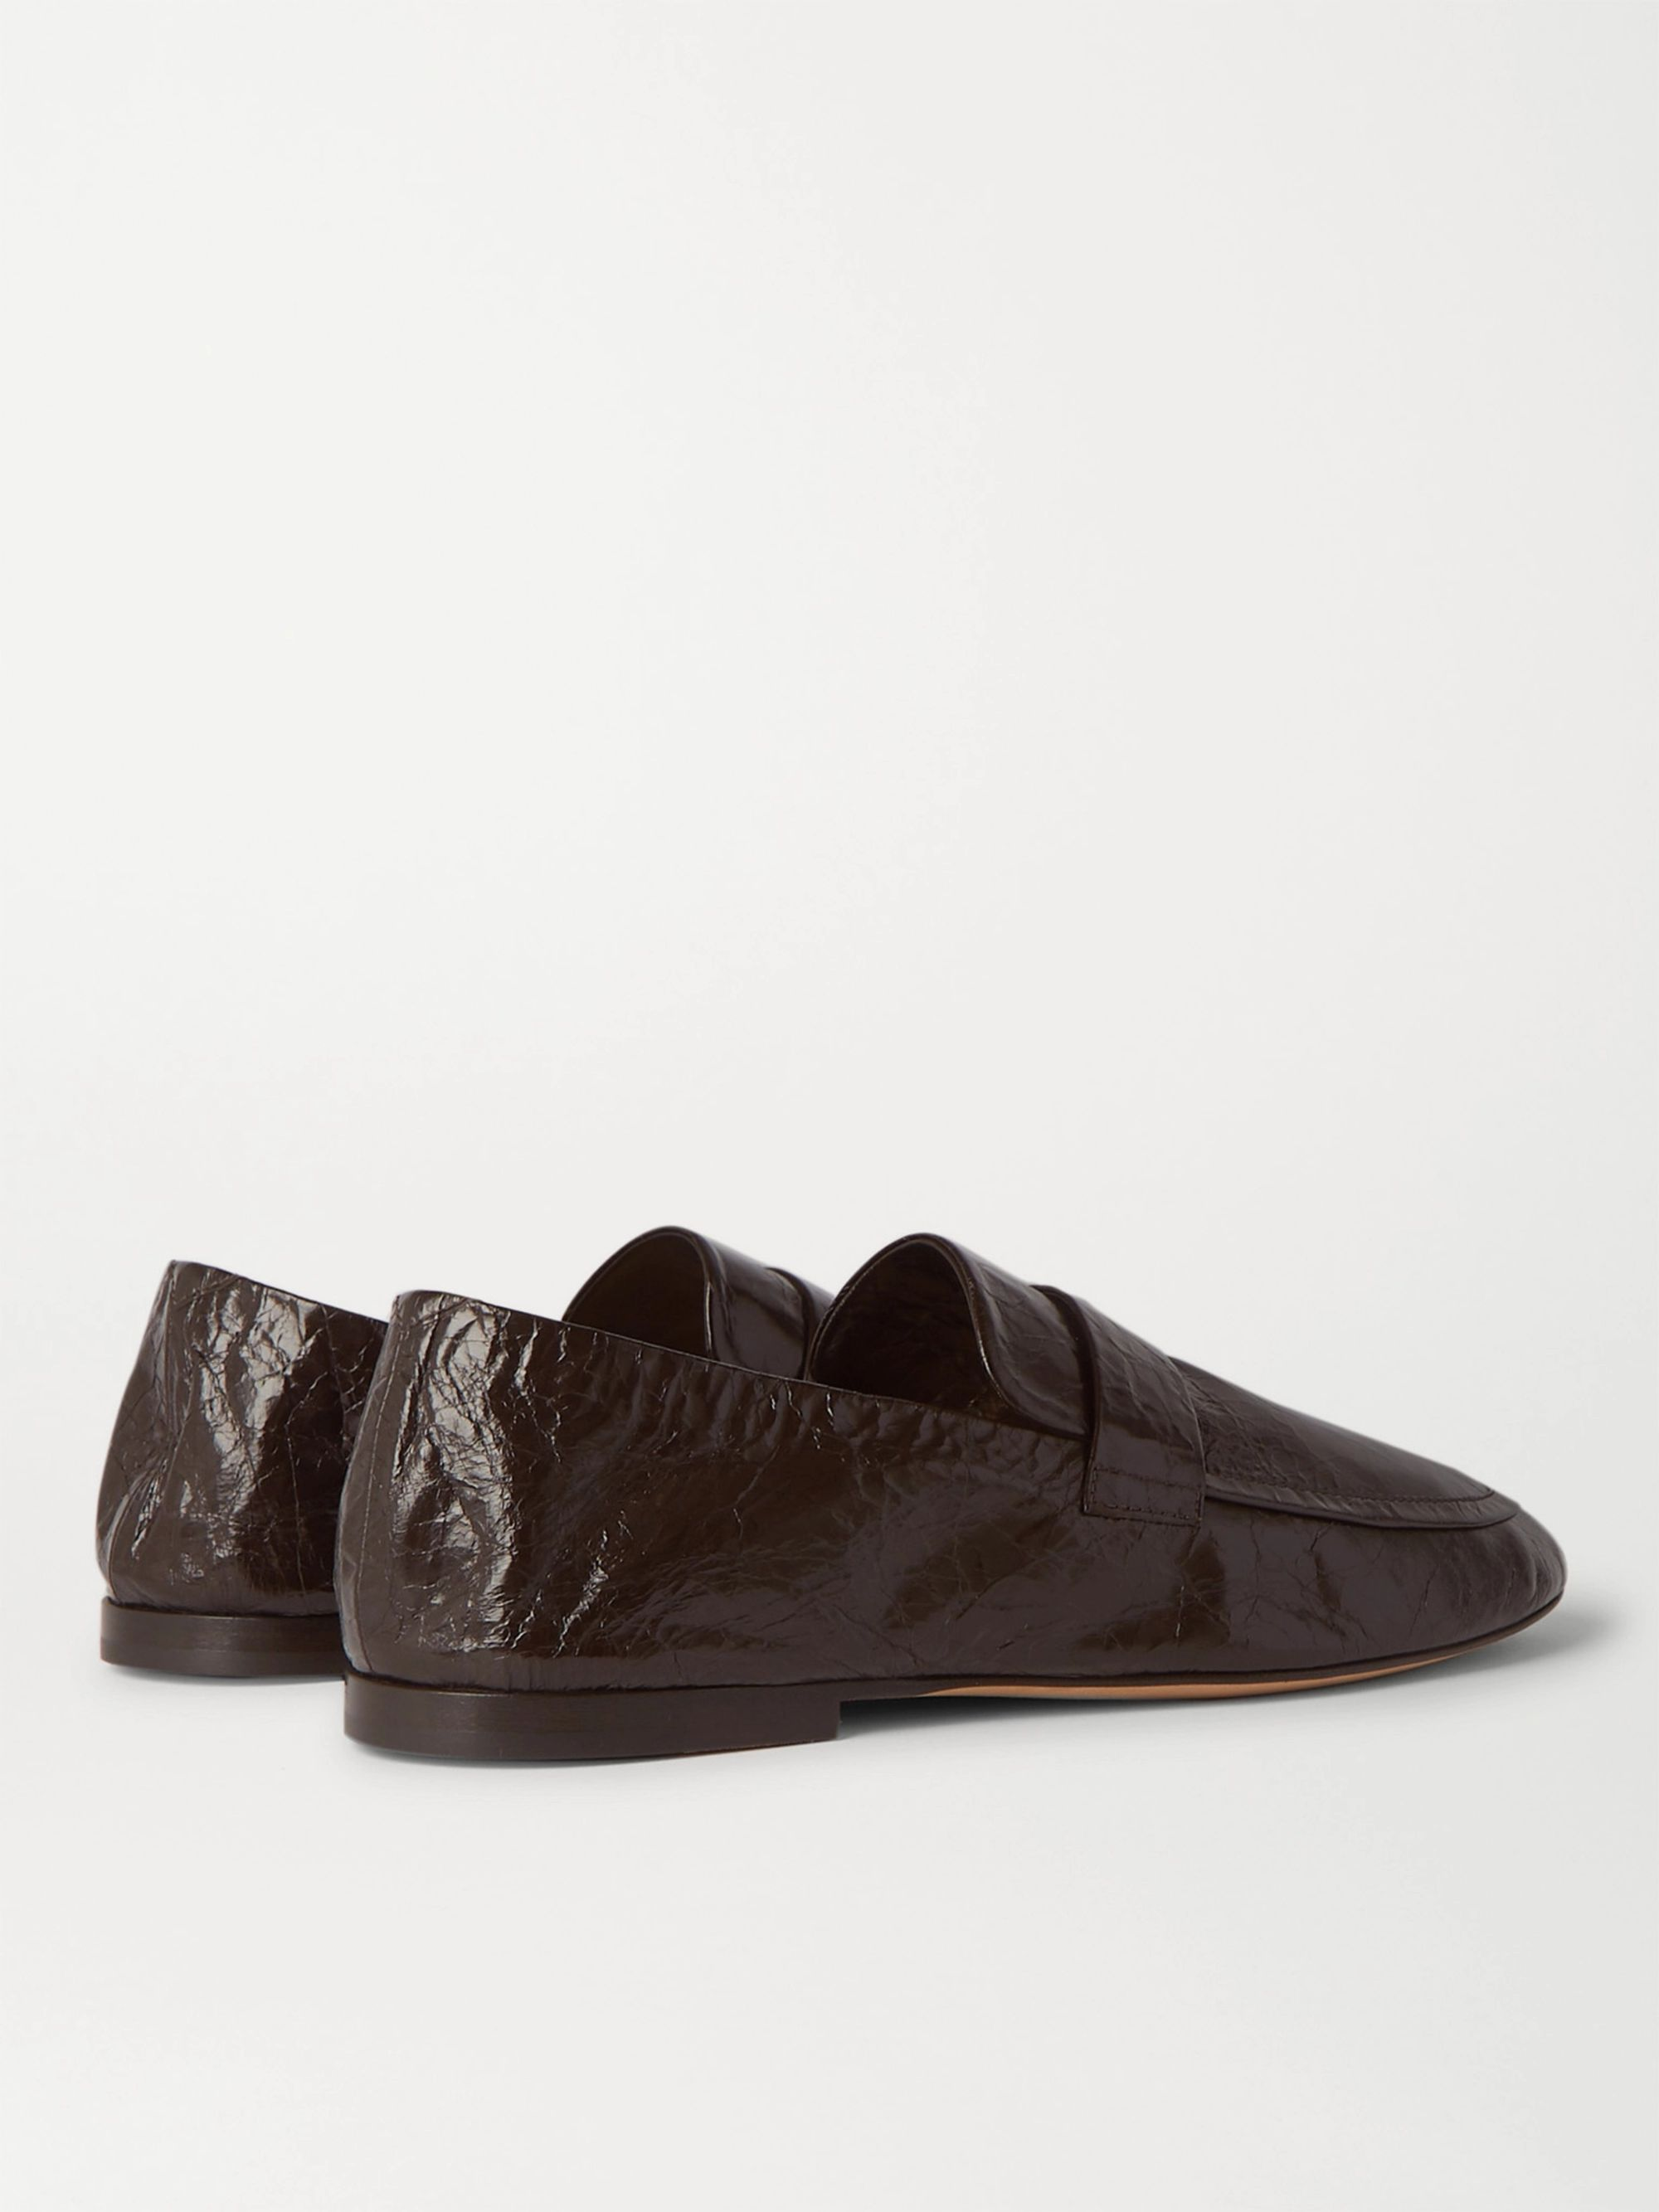 Bottega Veneta Crinkled-Leather Loafers